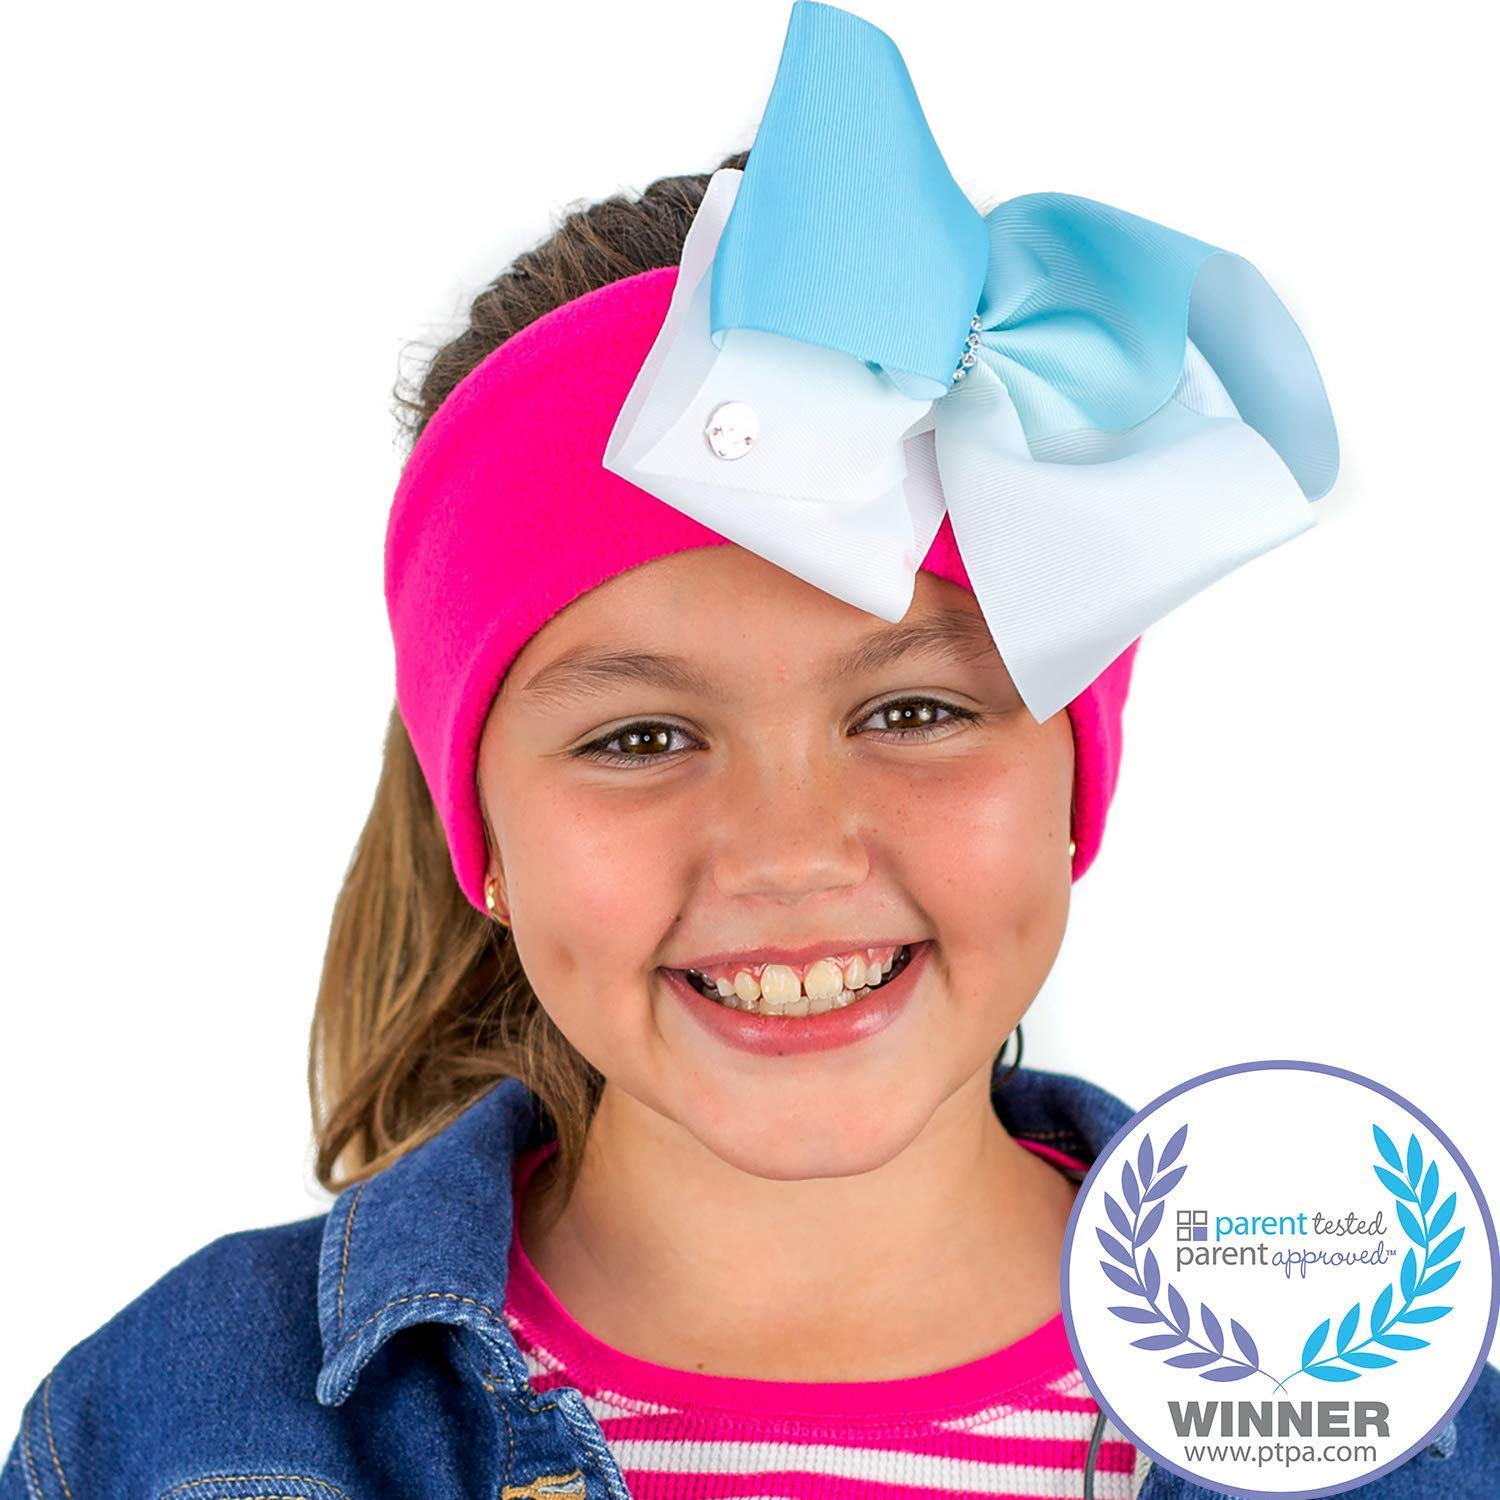 a3badbe3508 CozyPhones Kids Headphones Volume Limited with Ultra-Thin Speakers Soft  Fleece Headband - Perfect Children's Earphones for Home and Travel - Jojo  Siwa Bow